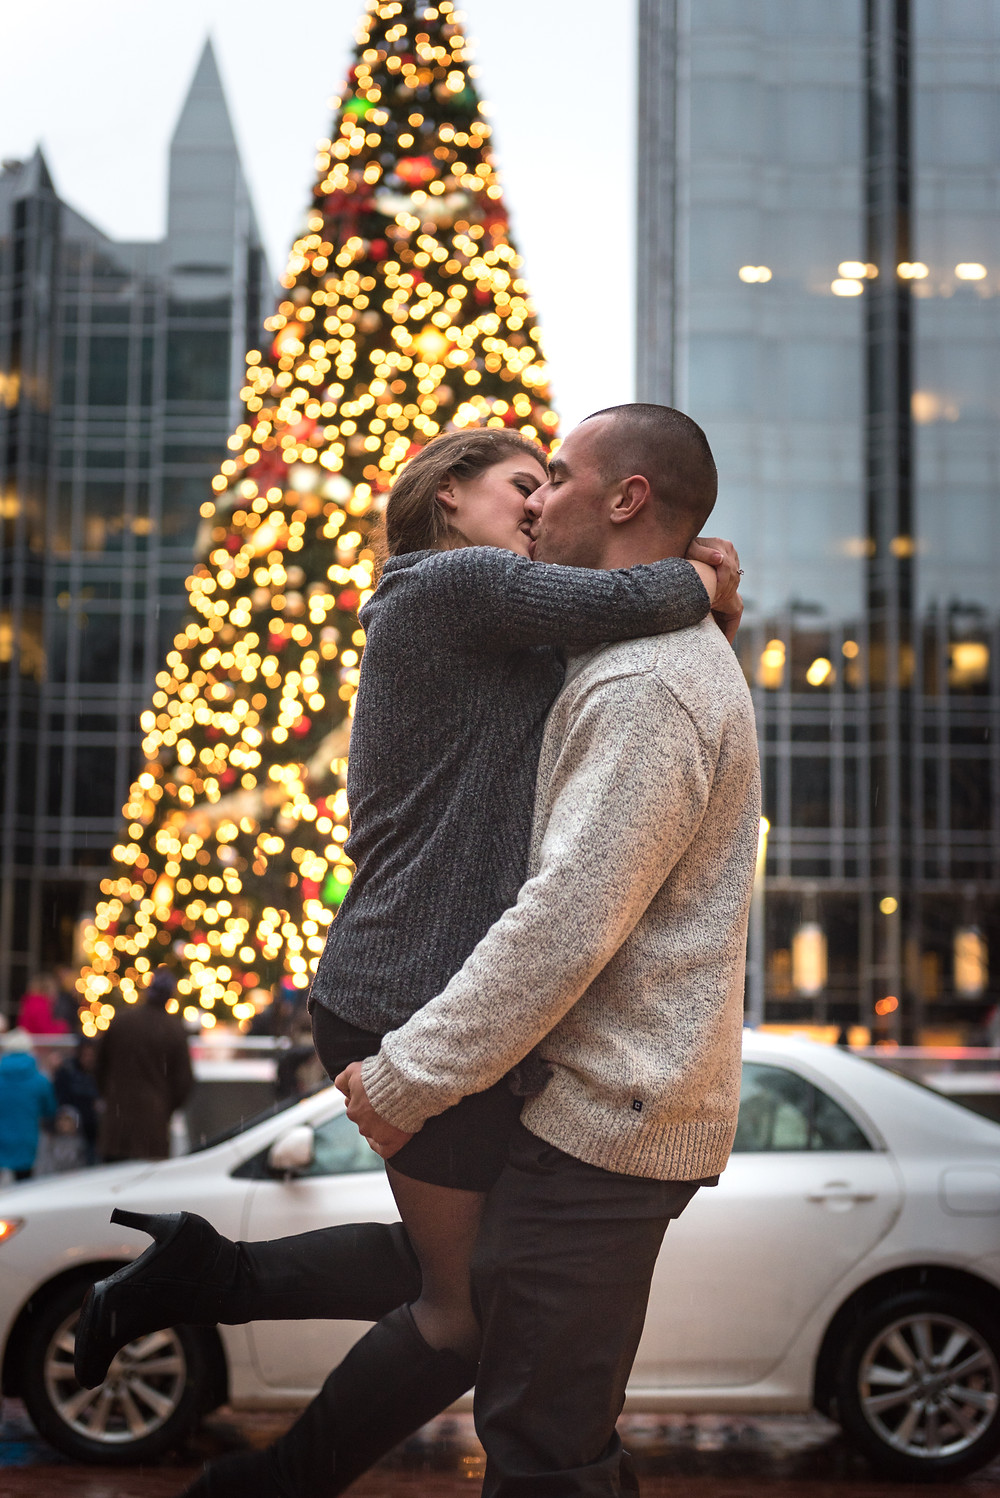 Guy holding girl close in front of the Christmas tree in Pittsburgh during their engagement session.